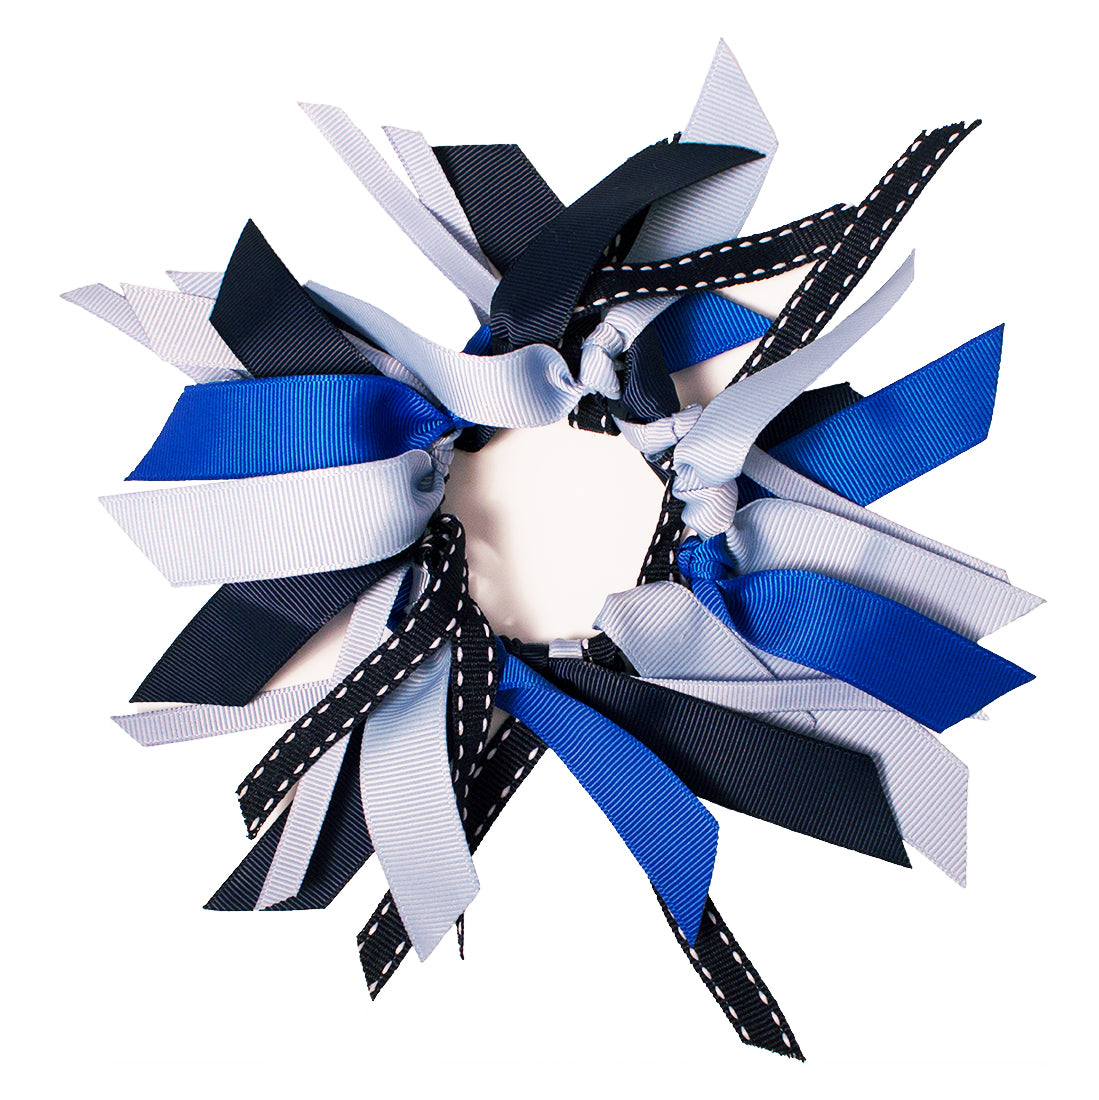 Mia® Spirit Ribbon Cluster Ponytailer - red, blue and white - by #MiaKaminski of Mia Beauty